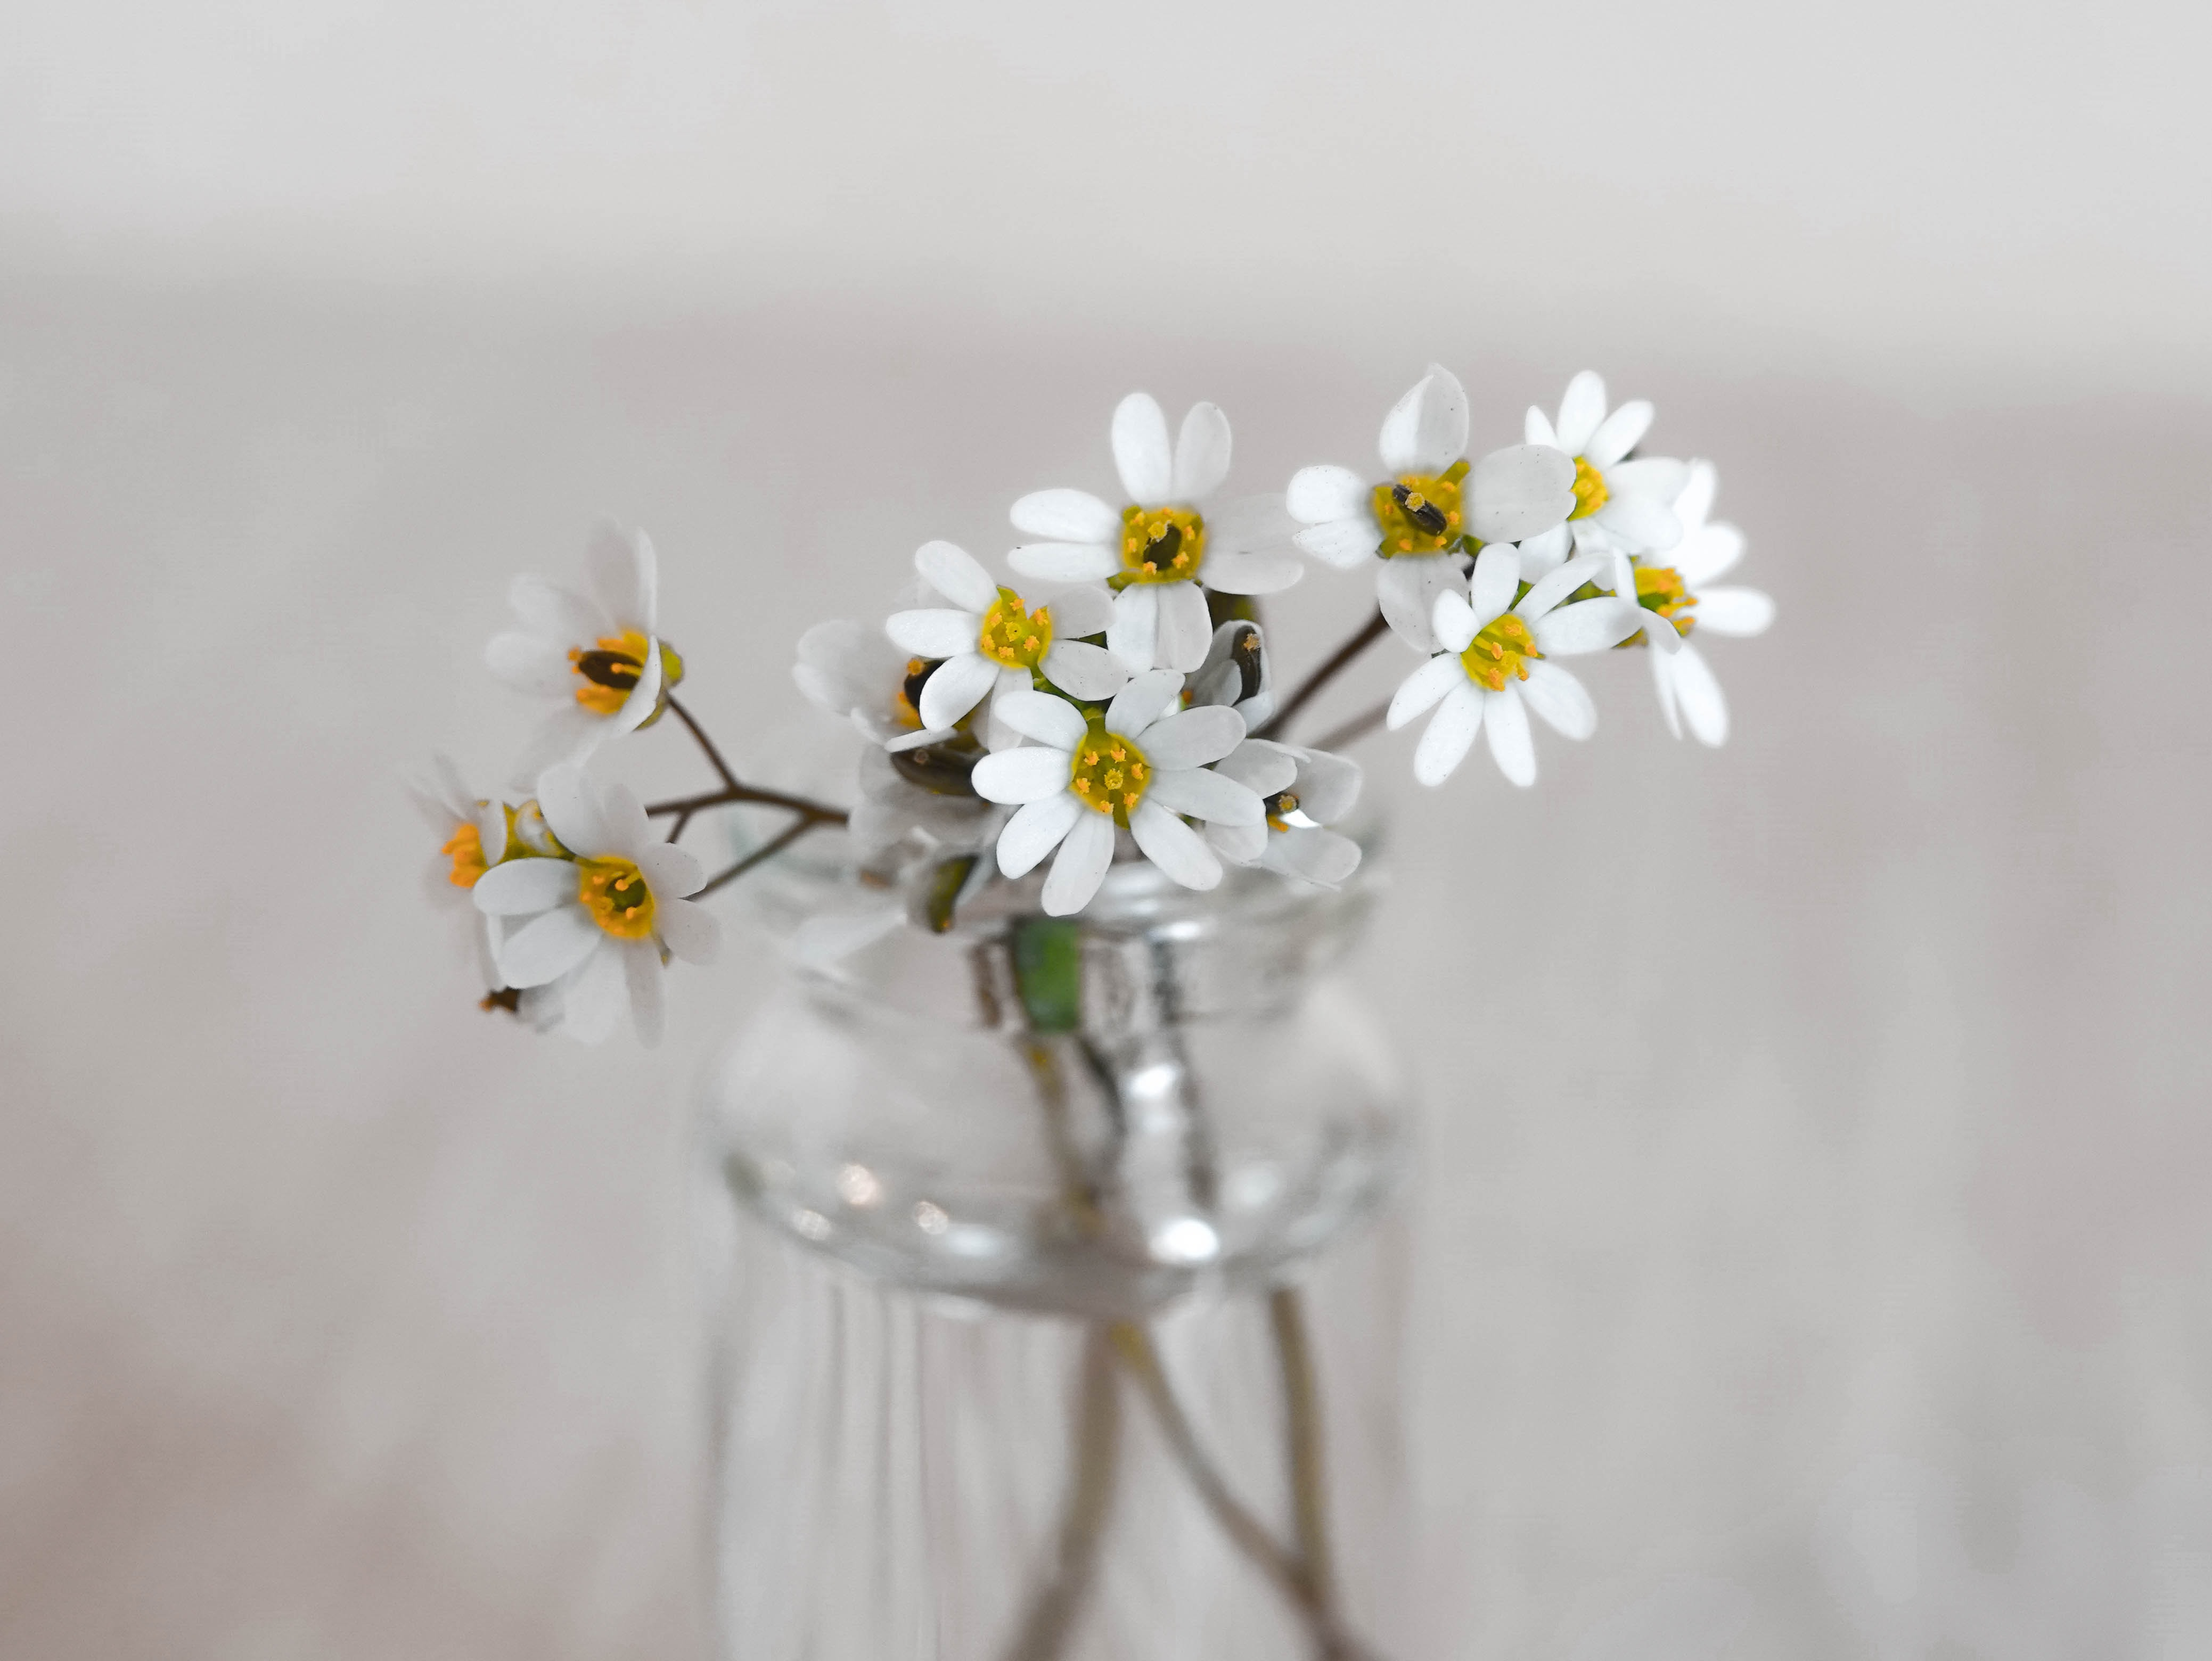 selective focus photography of white flowers in clear glass jar